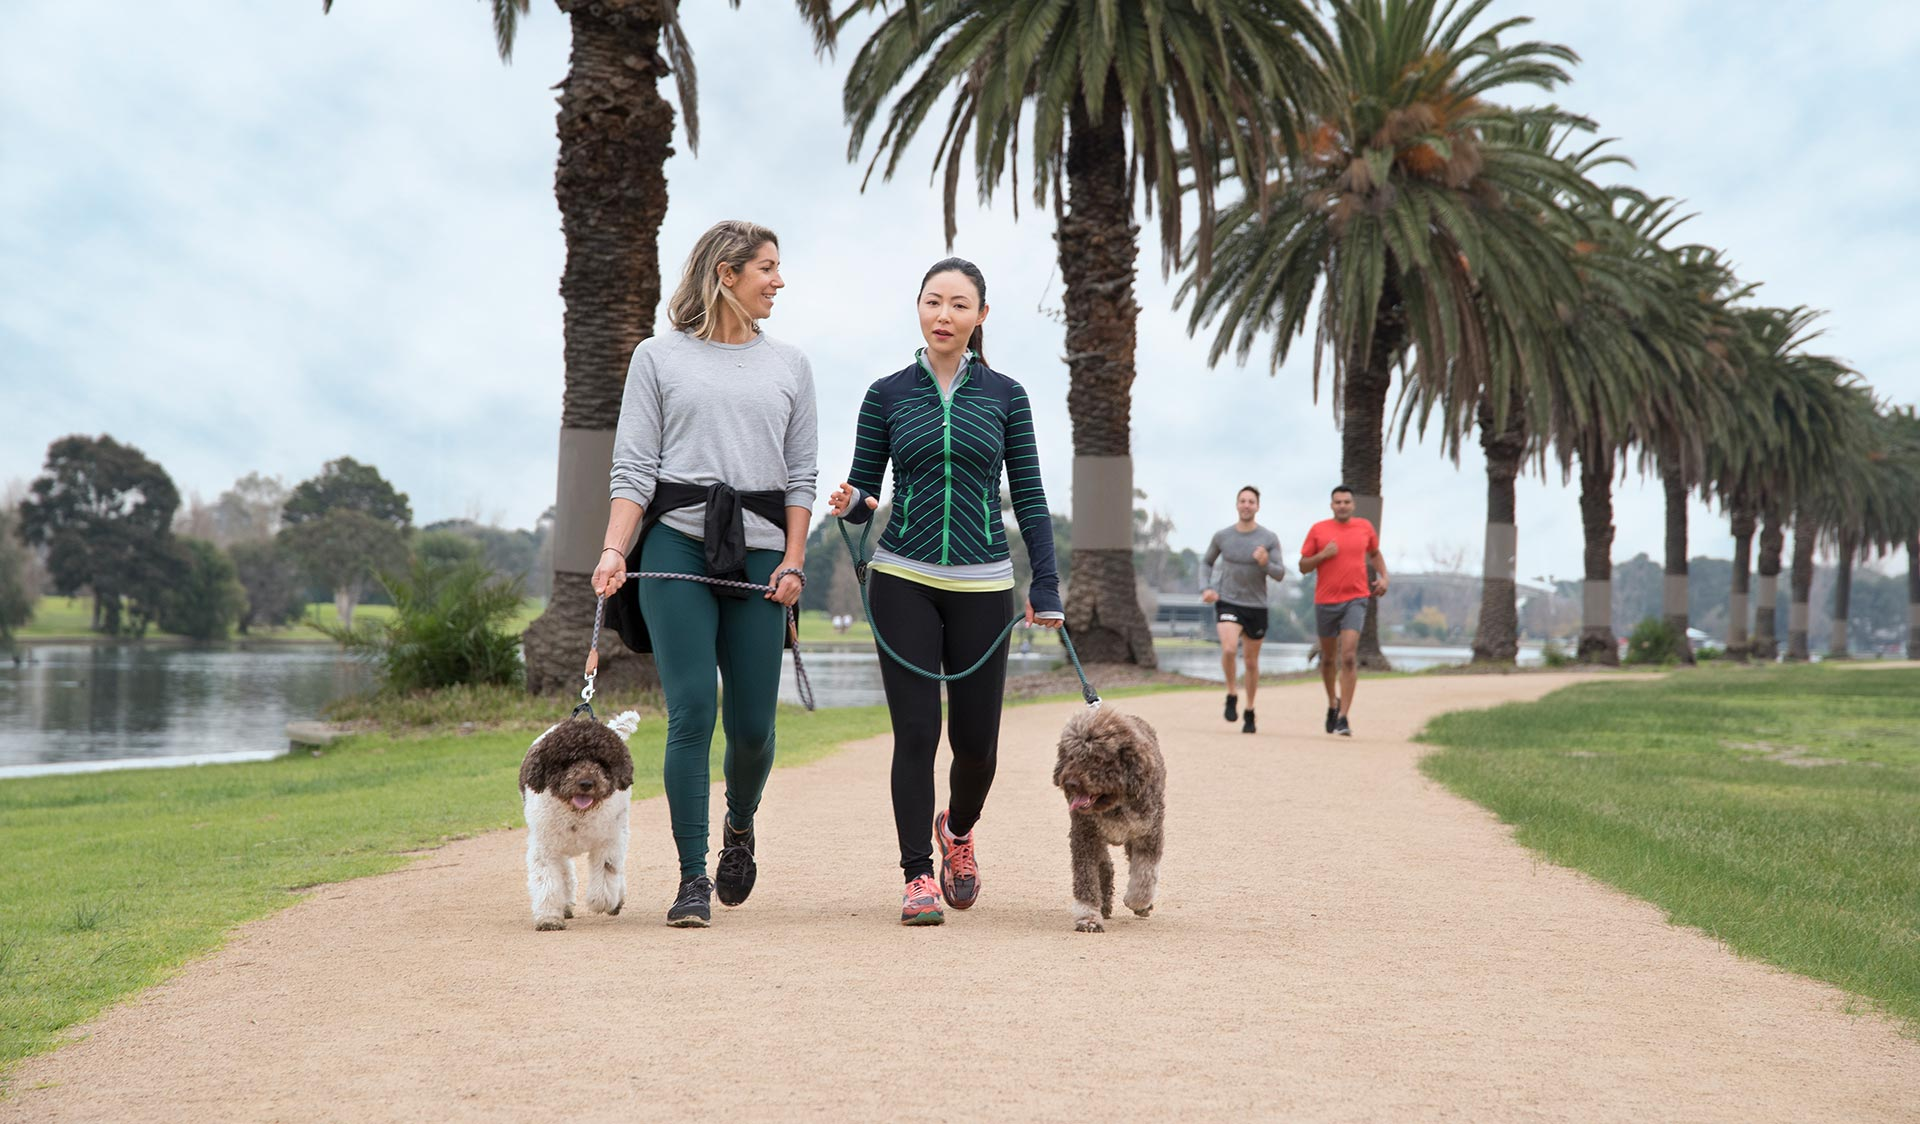 Two women in activewear walk their dogs while two runners approach them.